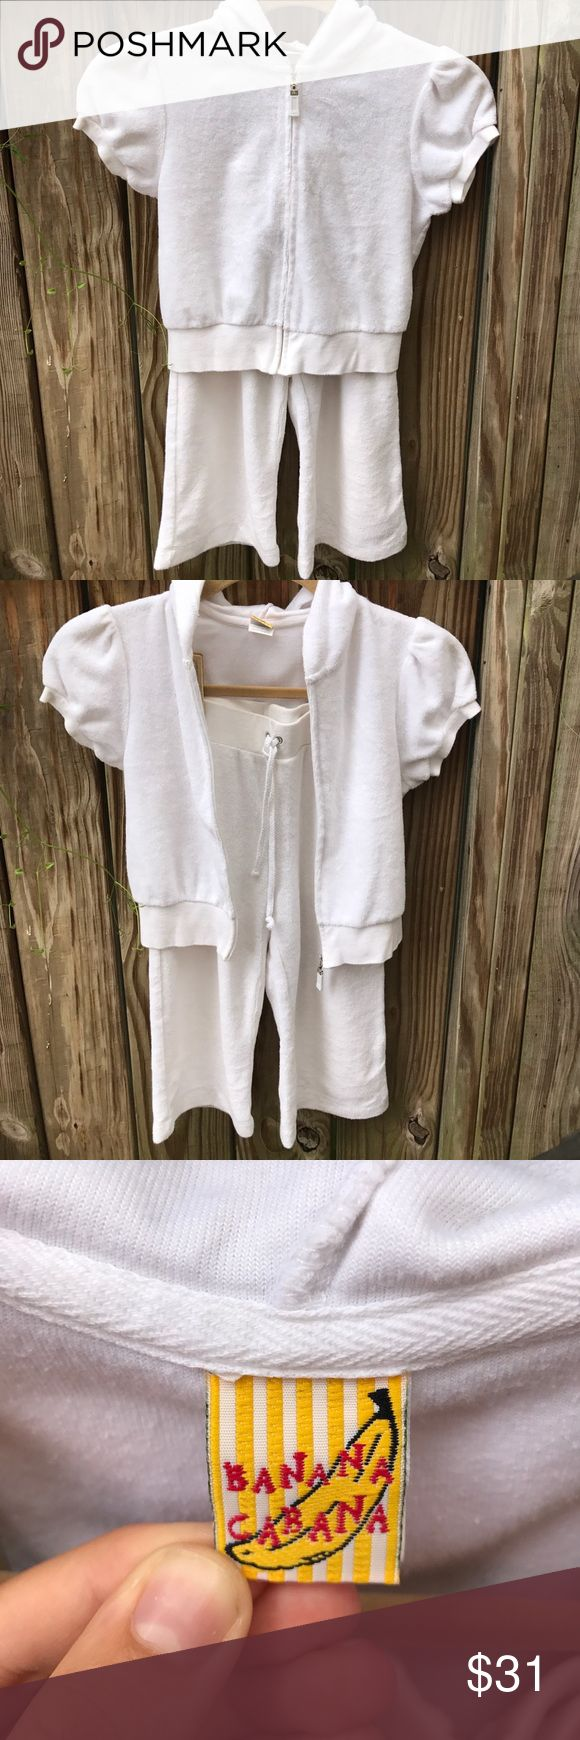 A girls BANNA CABANA two piece sweat suit🌤size 7 A girls white terry cloth sweatsuit with capri bottoms and shirtsleeve jacket🐩👛Size 7! Perfect for any putting very comfortable and great for back to school📓pair with sandals or tennis shoes banana cabana Matching Sets